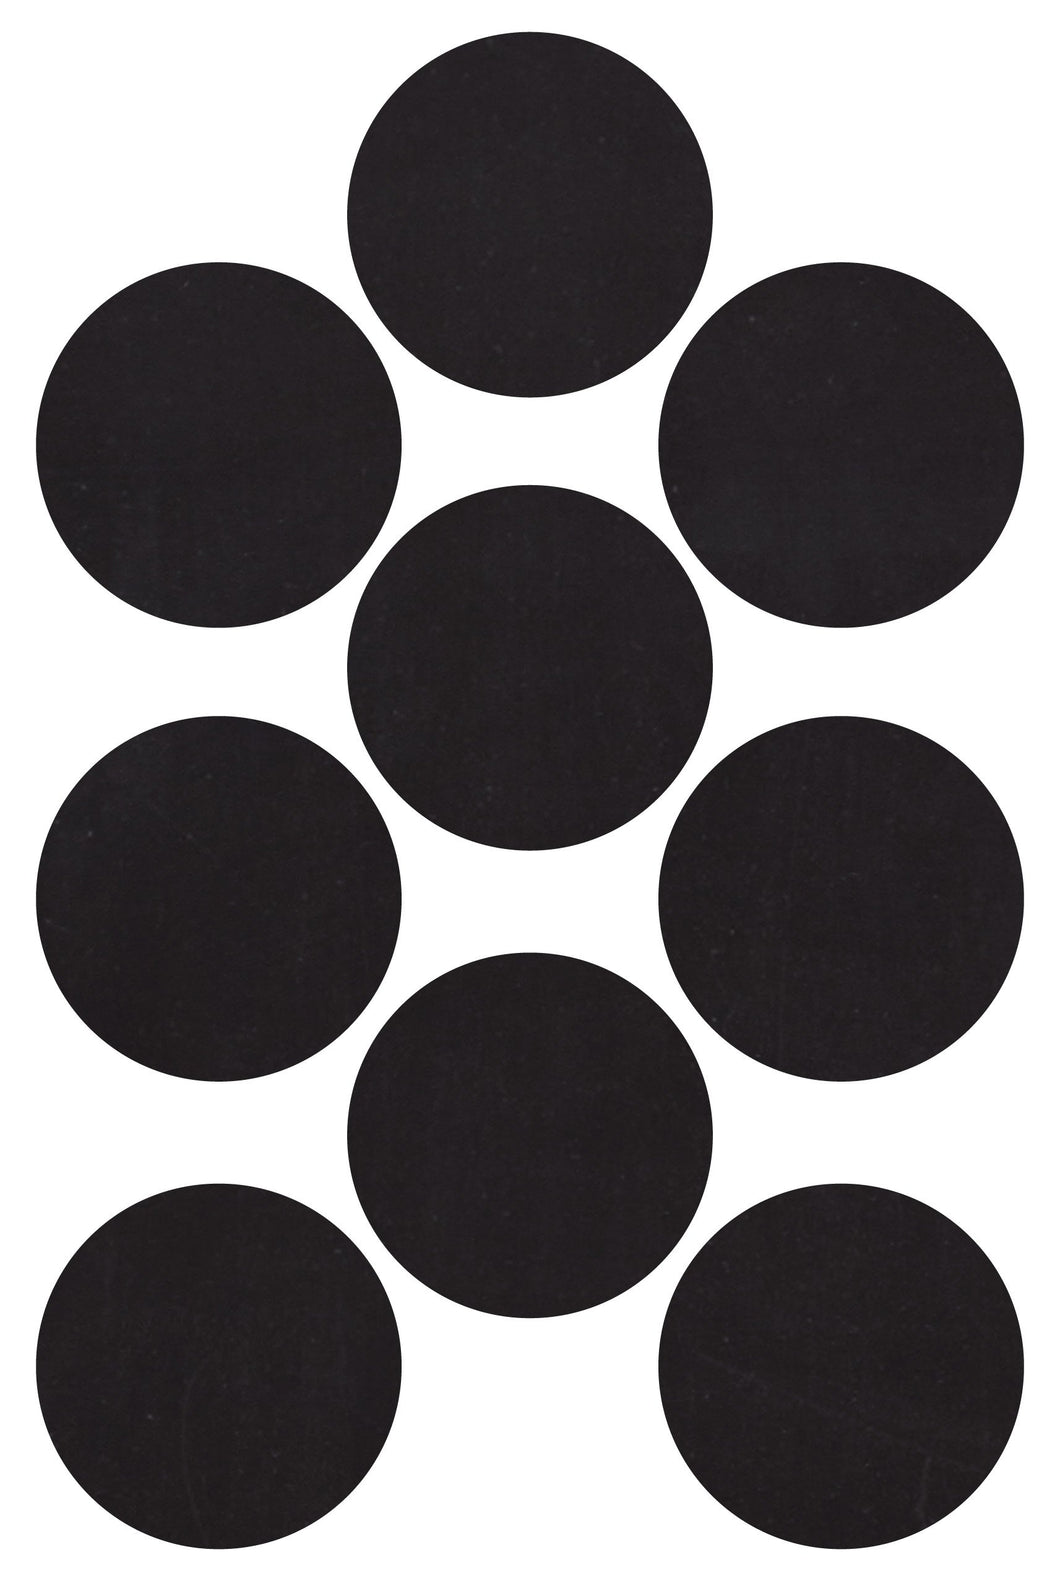 Chalkboard Circle Stickers - 16pcs - 2 Sheets